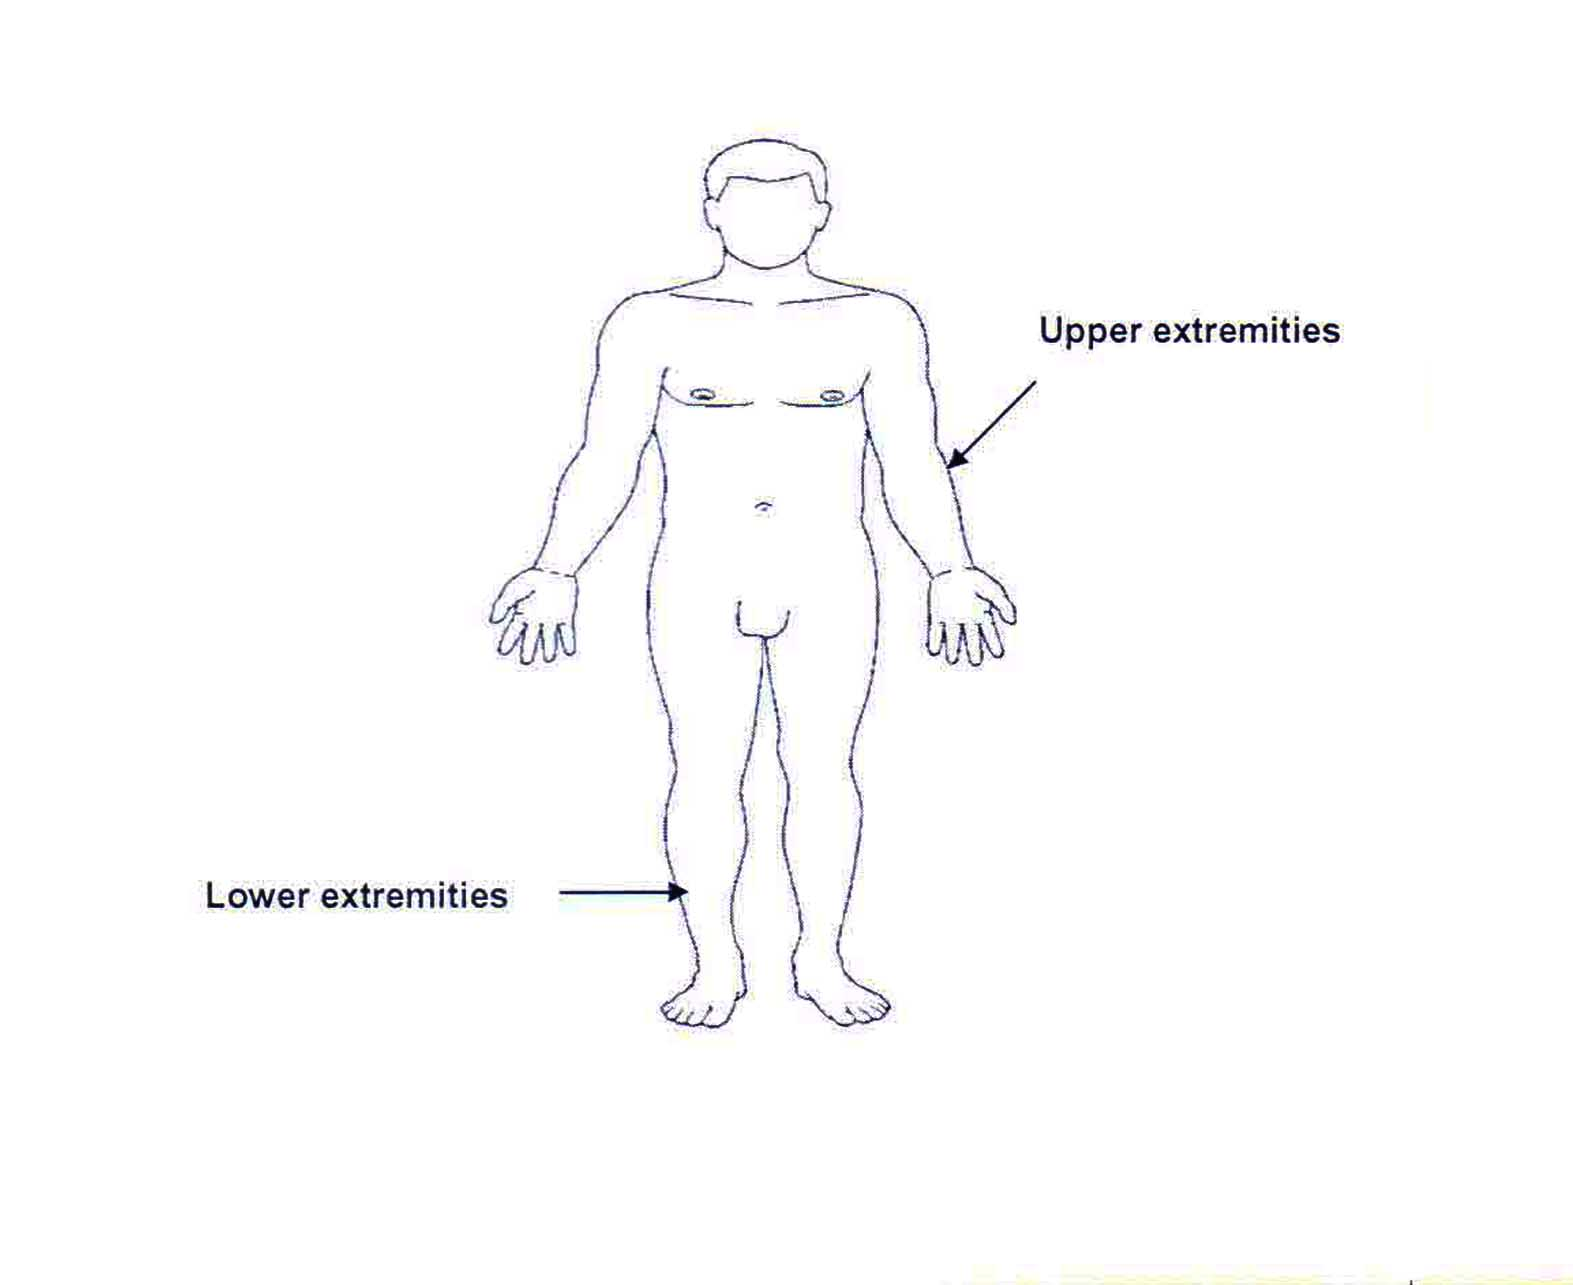 Upper Extremities and Lower Extremities